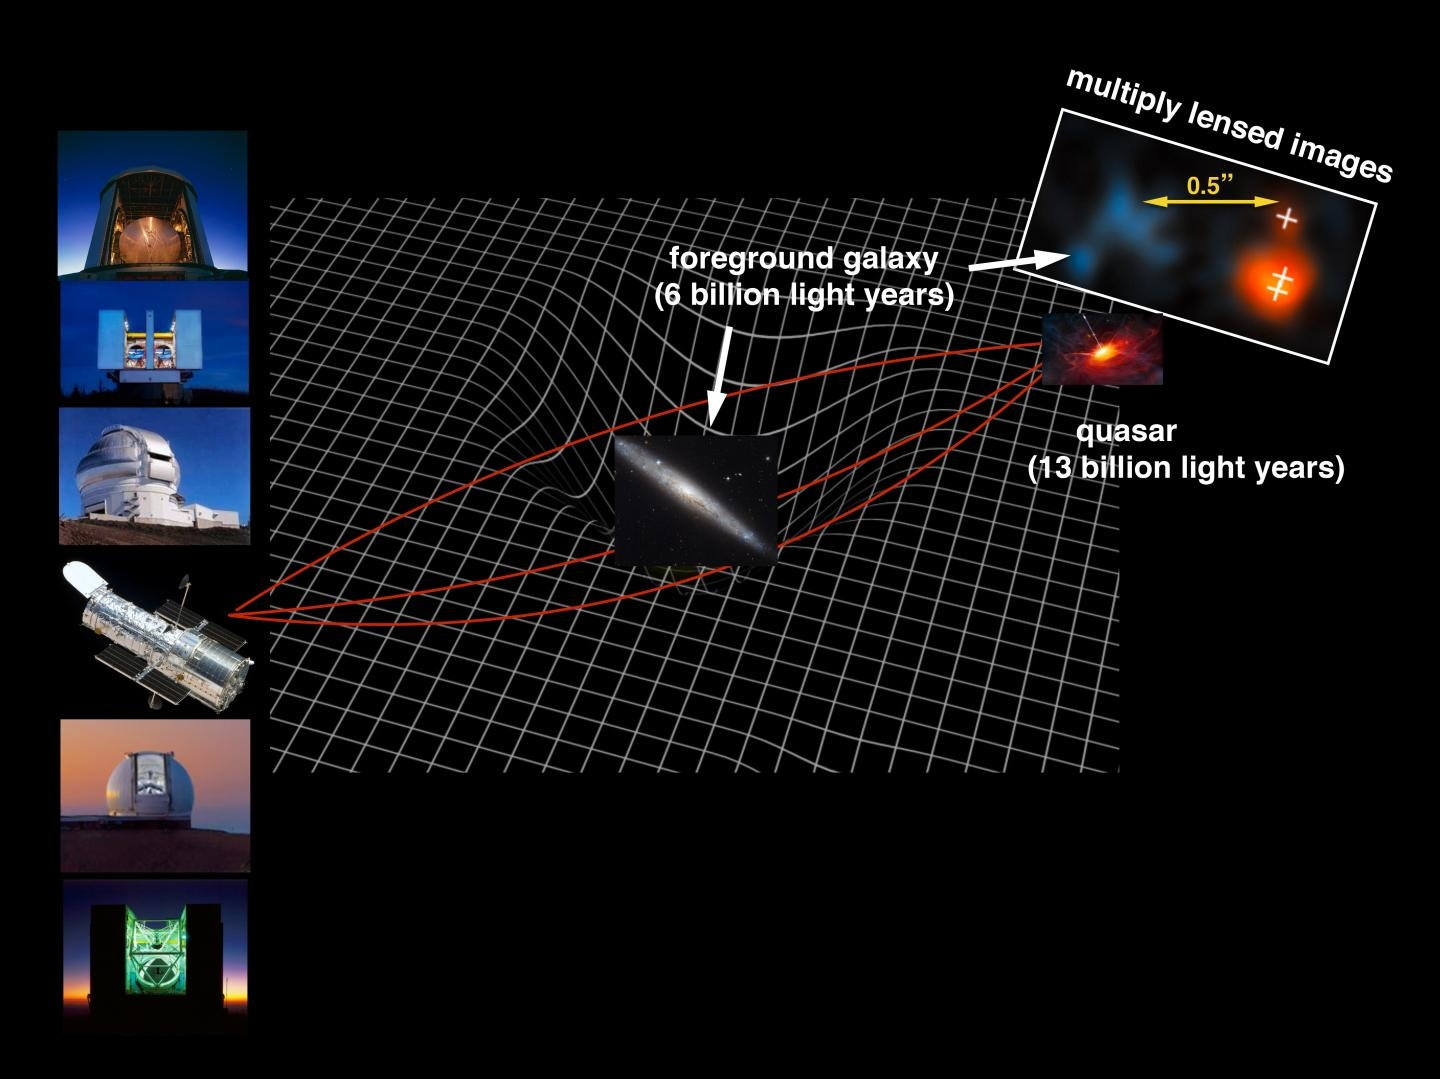 As the light from the quasar passed by a nearer galaxy, the gravity created by the galaxy distorted the light from the quasar, magnifying it and redirecting it toward Earth.